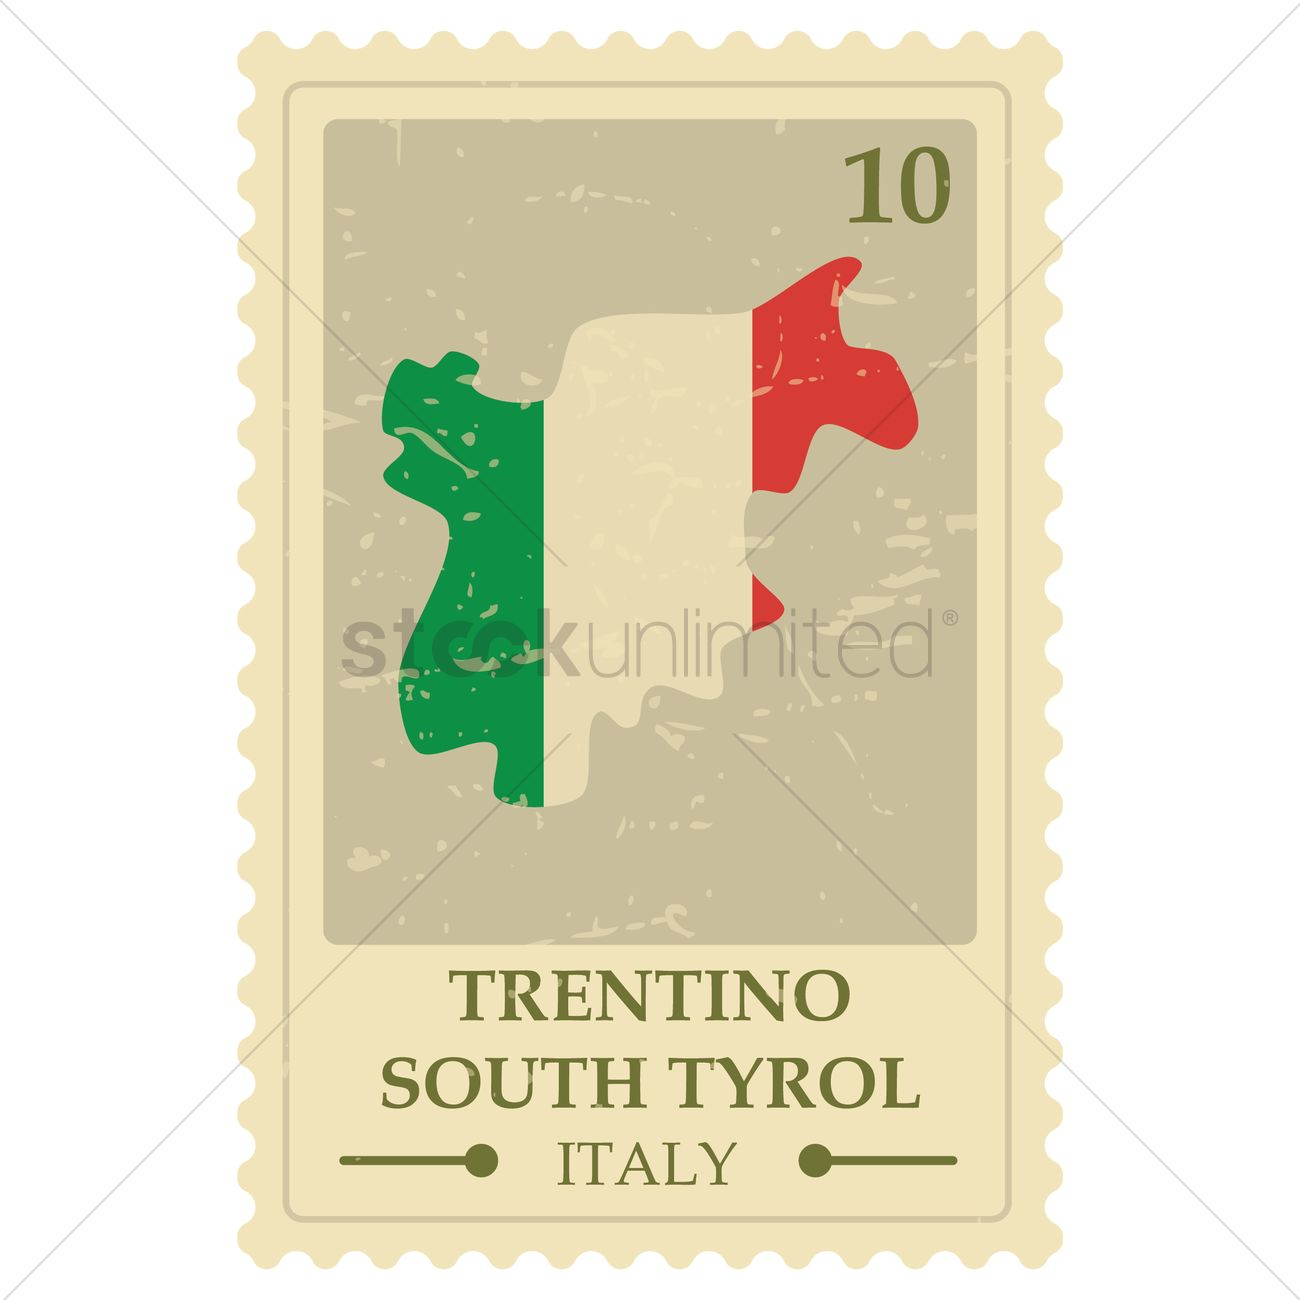 Trentino south tyrol map postage stamp Vector Image.